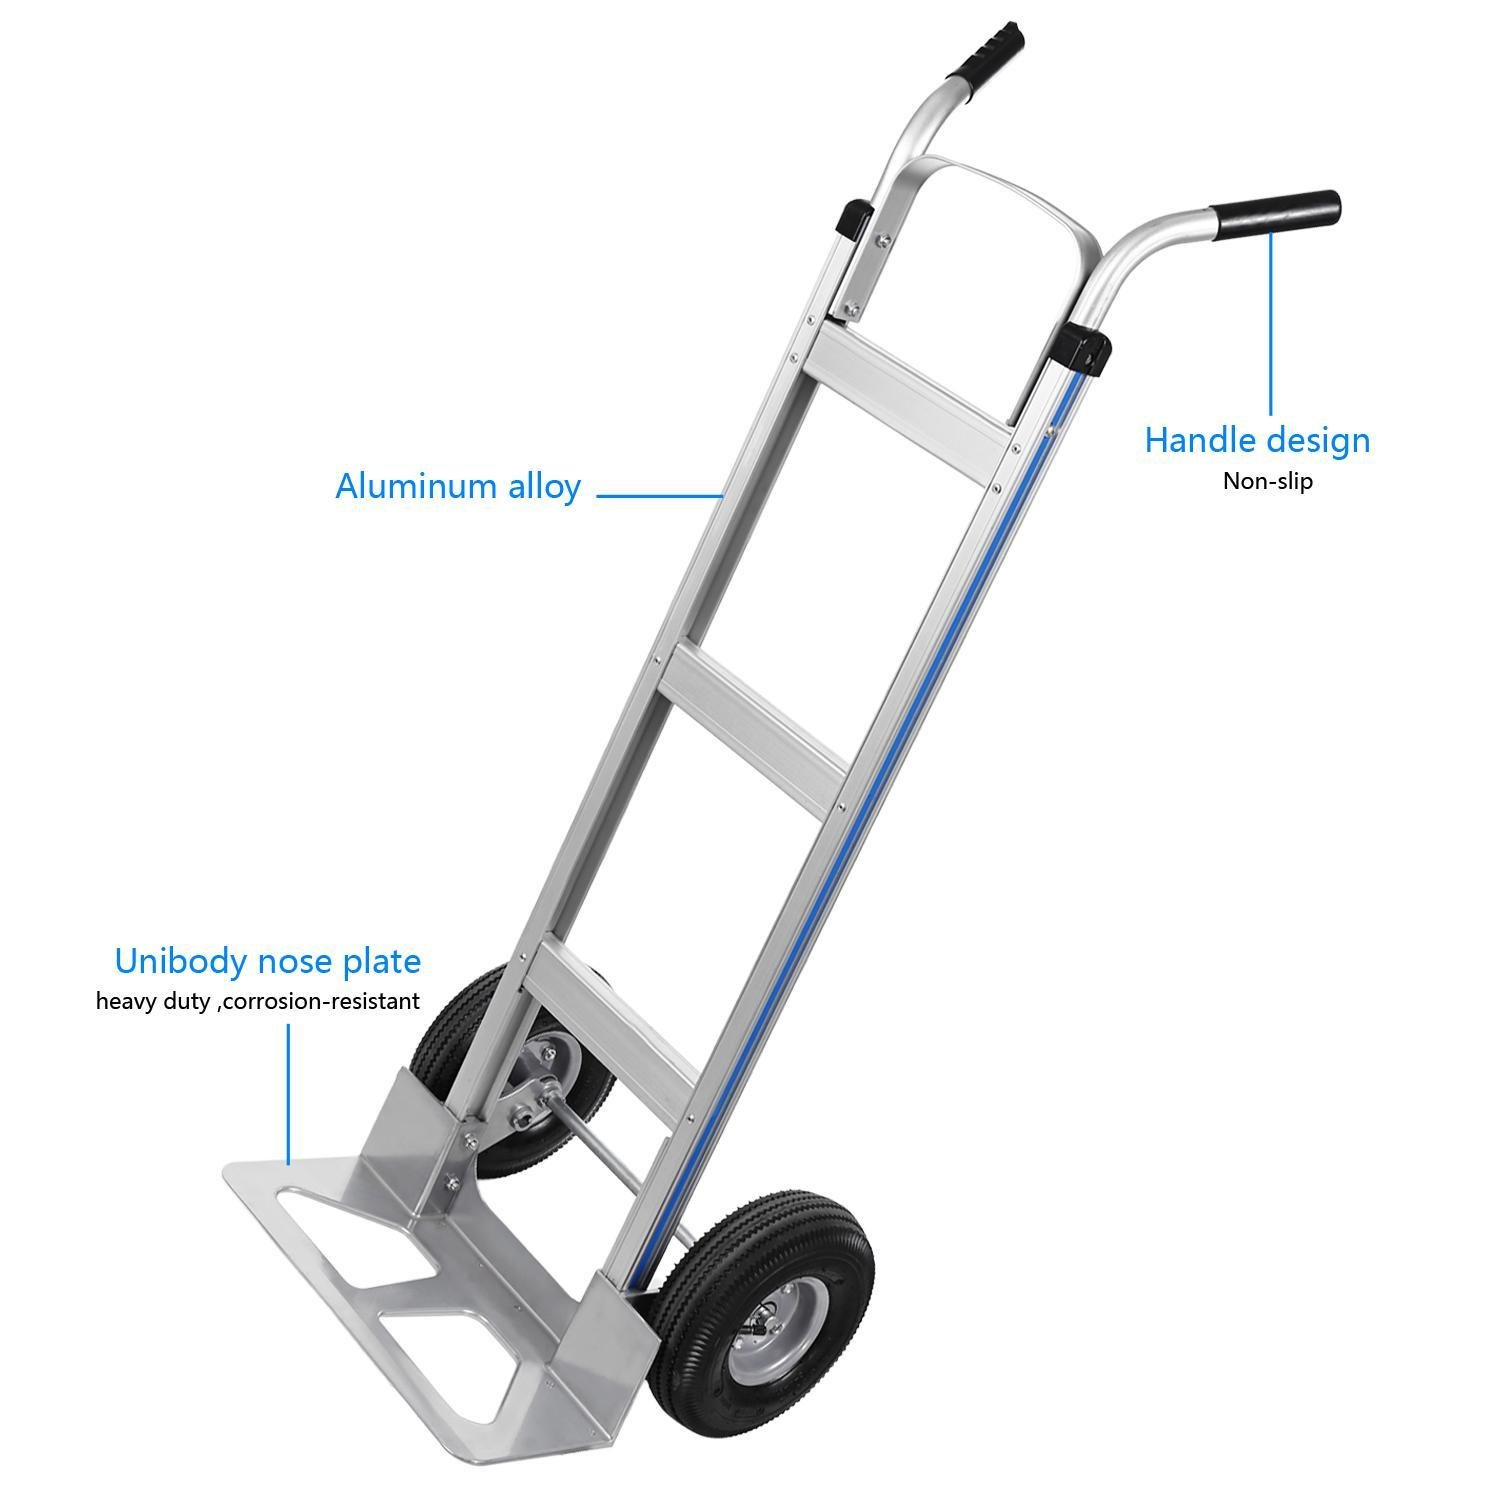 Ferty Aluminum Hand Trucks 500LBS With 2 Pneumatic Tires Dolly, Double Pistol Grip Handle Heavy Duty Trolley/Cart With 2 Wrench by Ferty (Image #6)